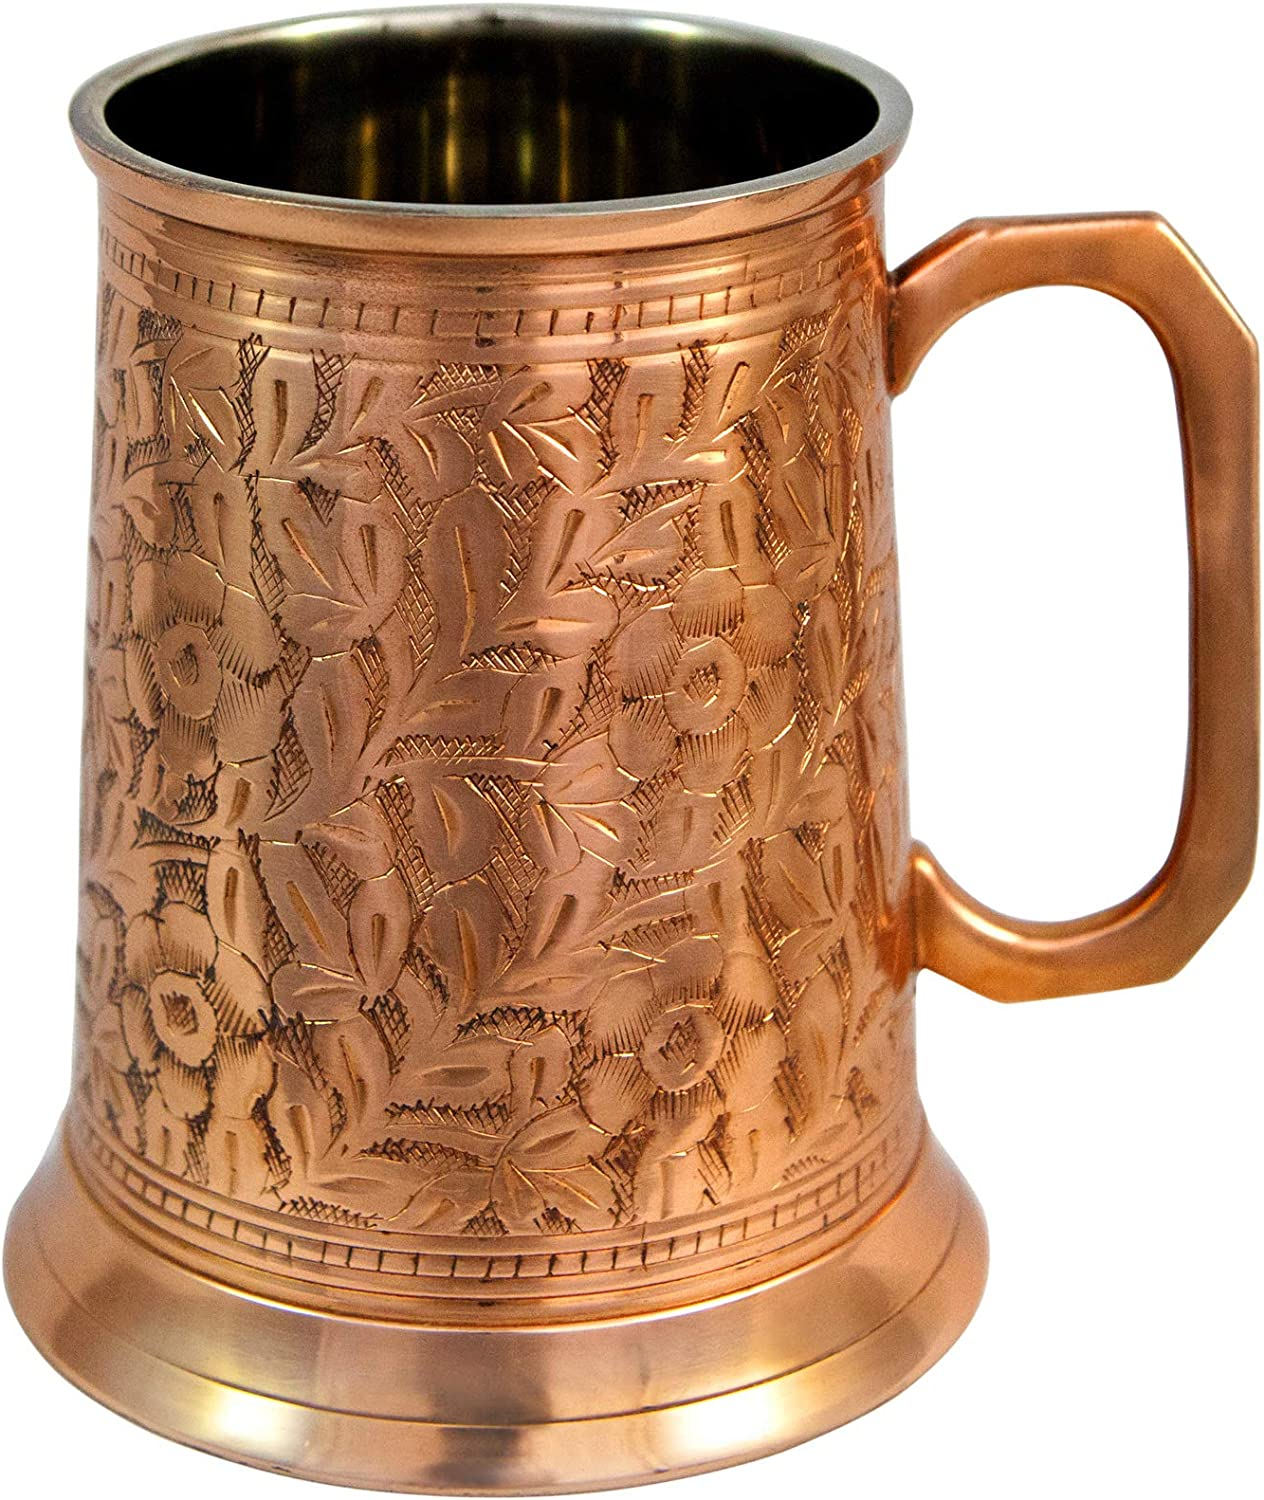 Copper OFFicial German Beer Stein 5 ☆ popular Large - Antique Handcrafted